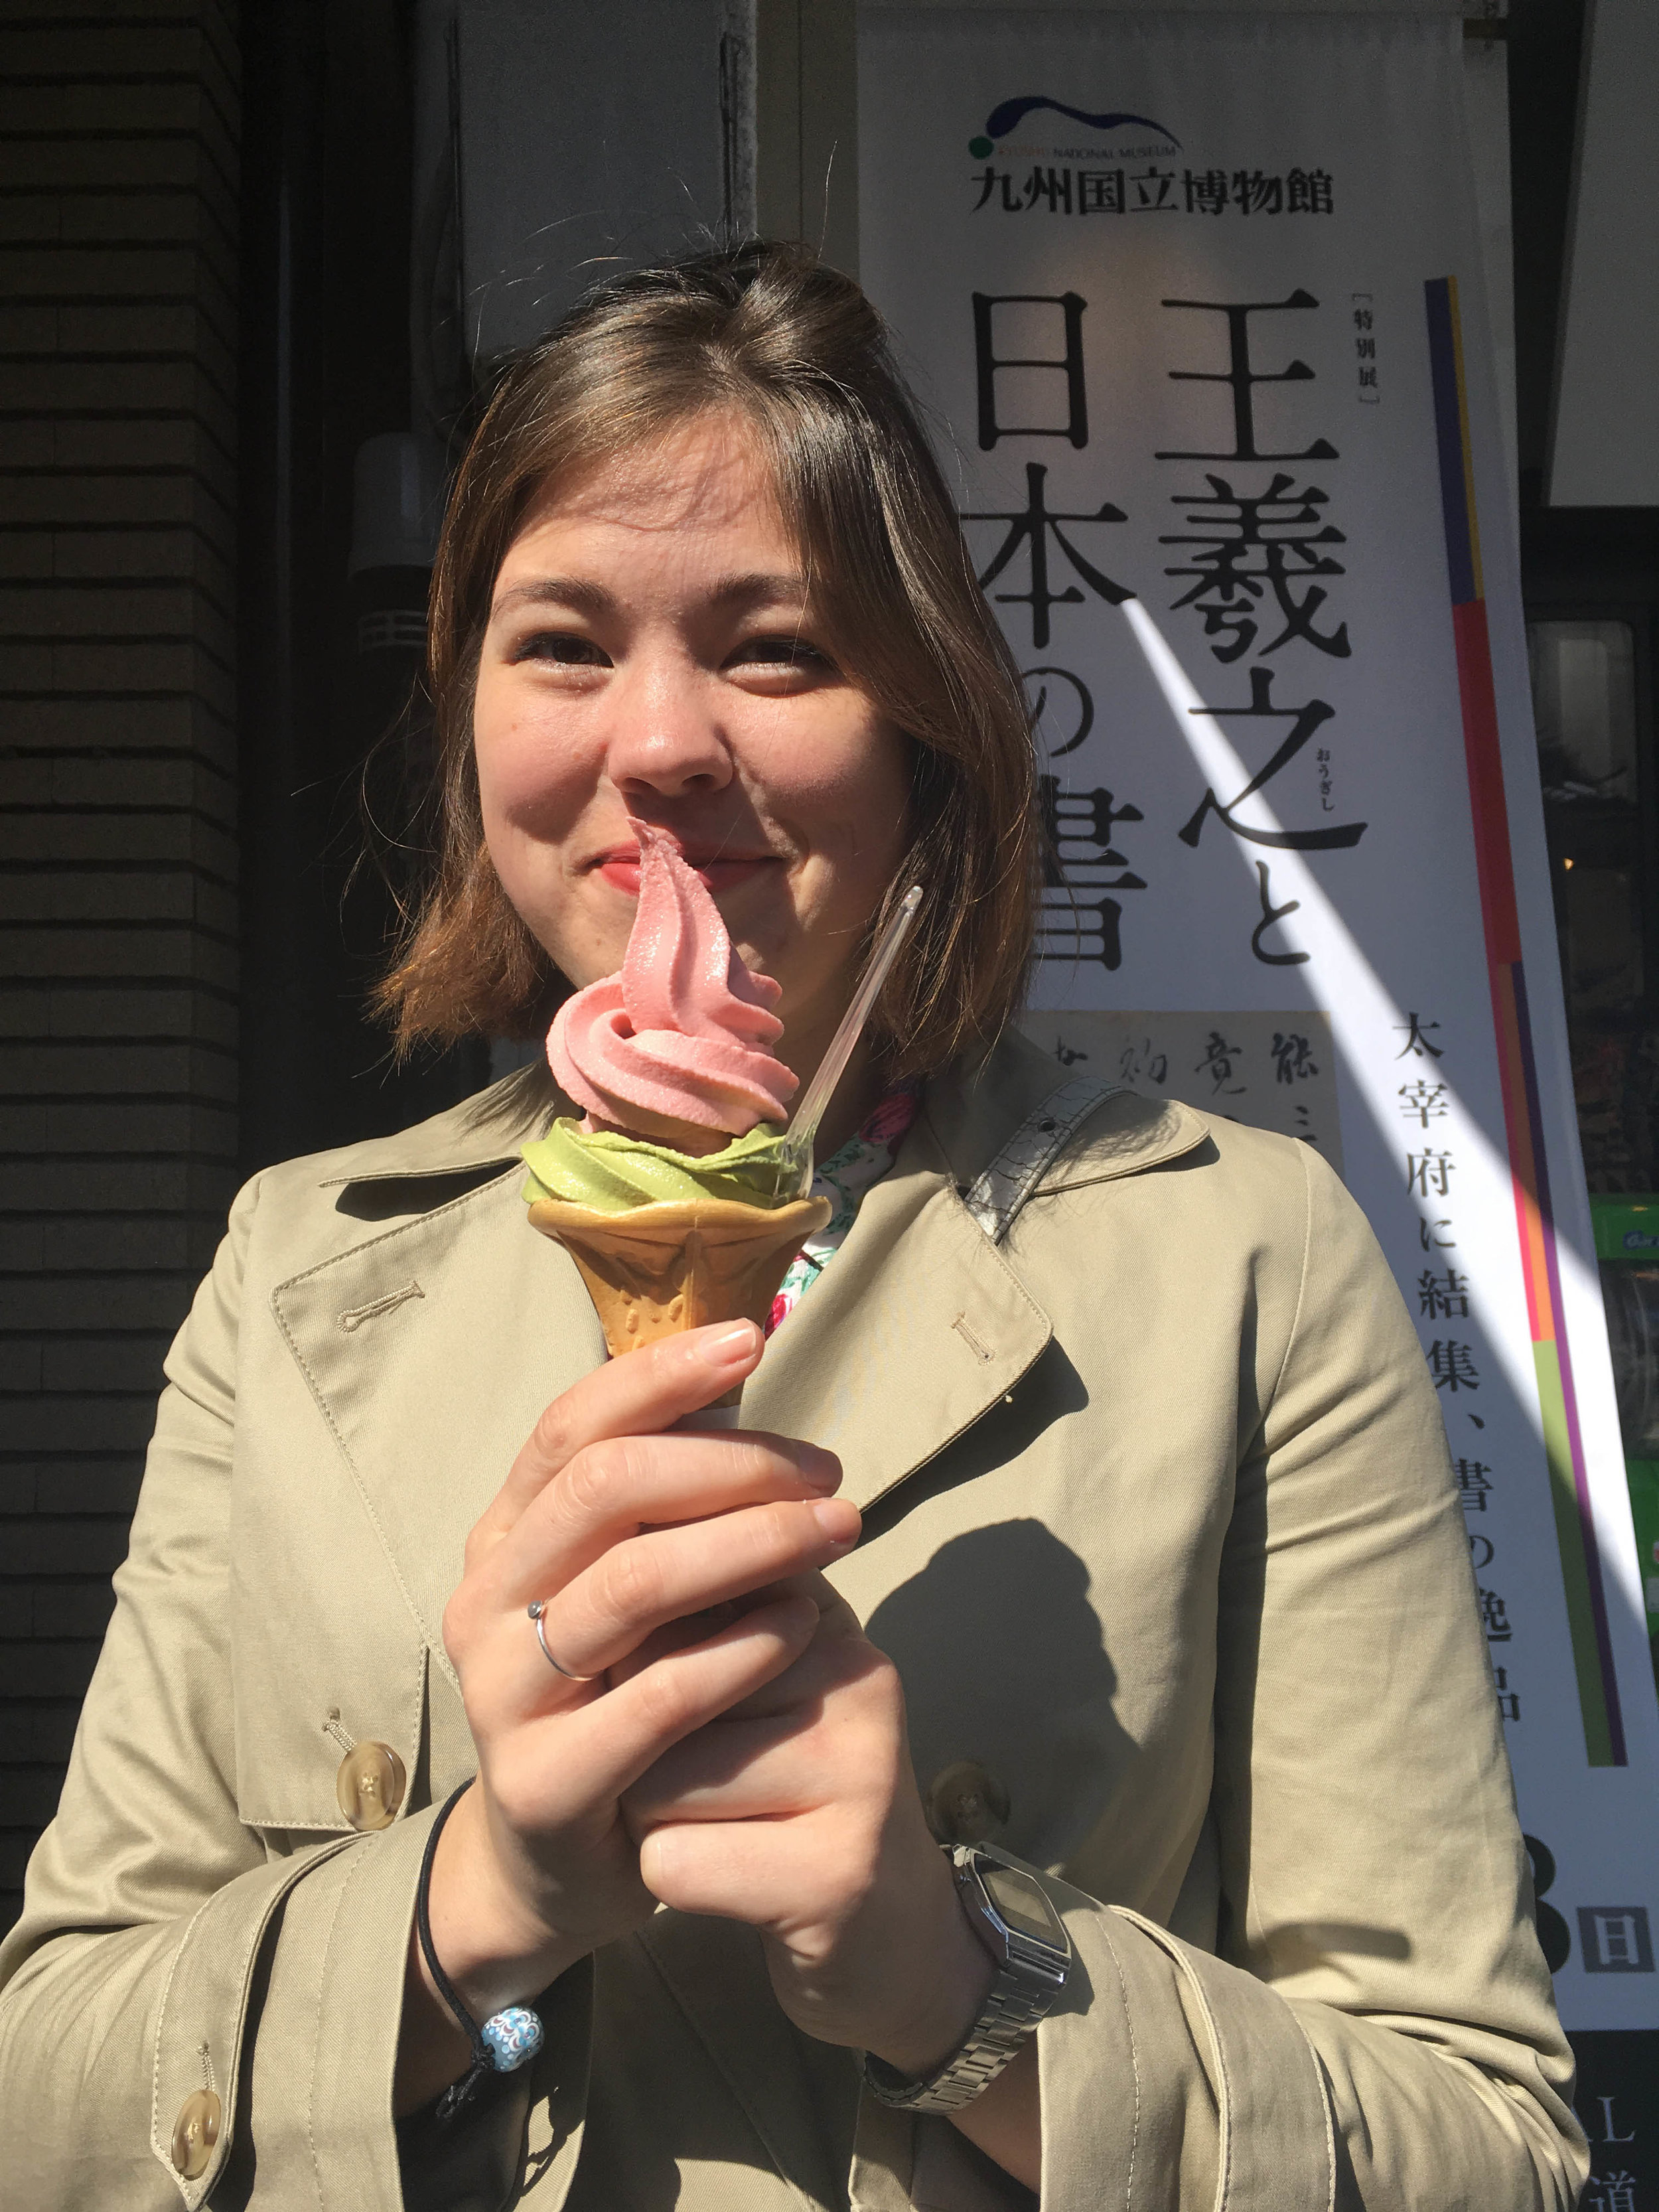 Strawberry and matcha softcream. Inside the cone was filled with corn flakes!